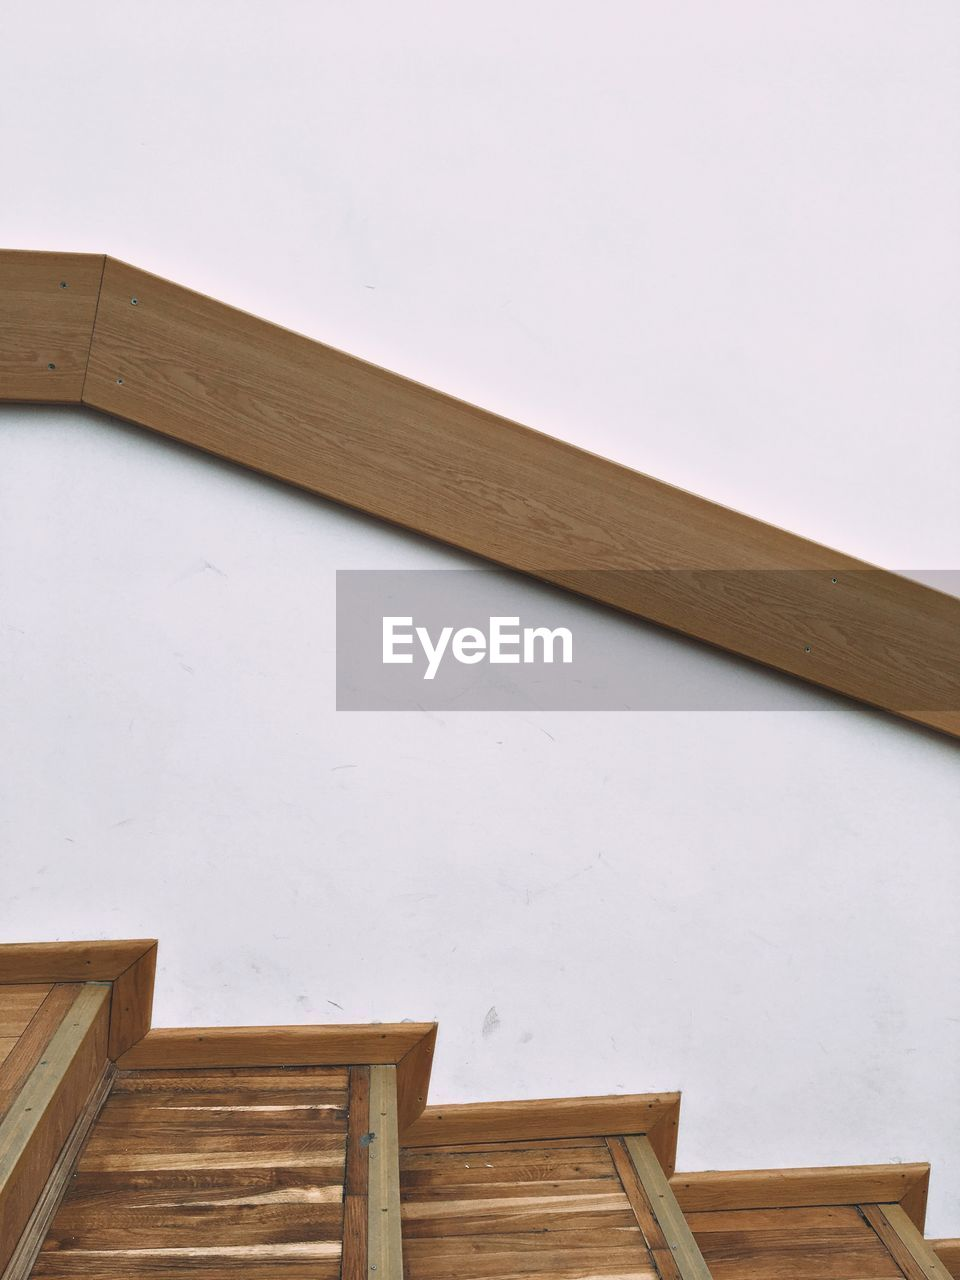 wood - material, architecture, no people, built structure, wall - building feature, indoors, copy space, day, low angle view, home interior, building, seat, wood, wall, railing, brown, white color, absence, ceiling, roof beam